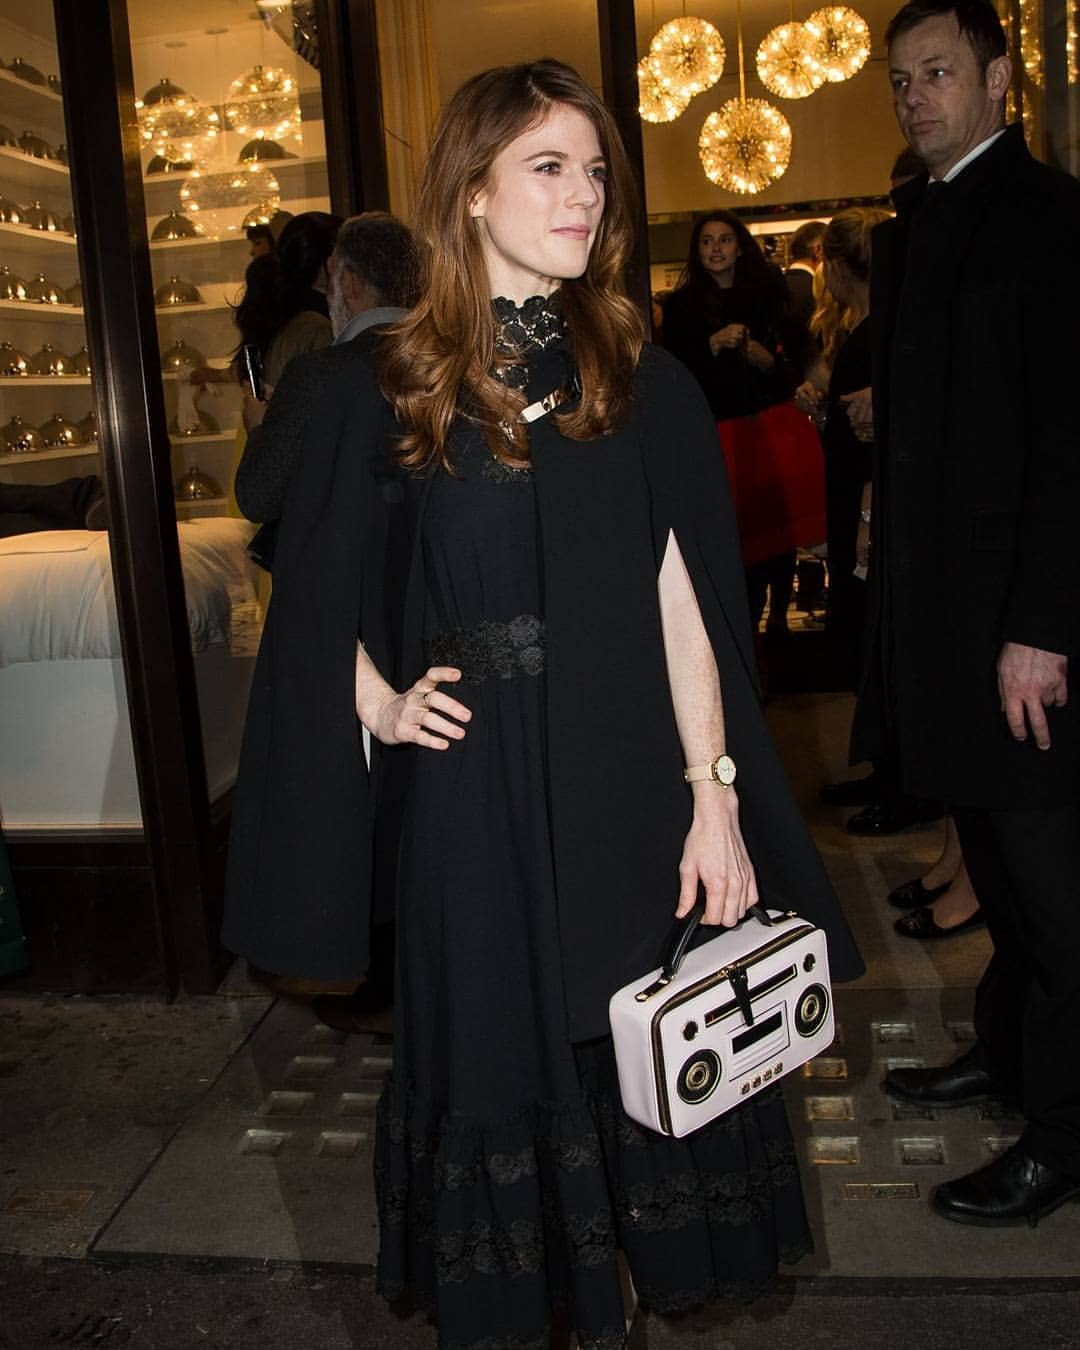 Rose Leslie Hot Pictures, Bikini And Fashion Style (49 Photos) - Page 4 of 5 - The Viraler